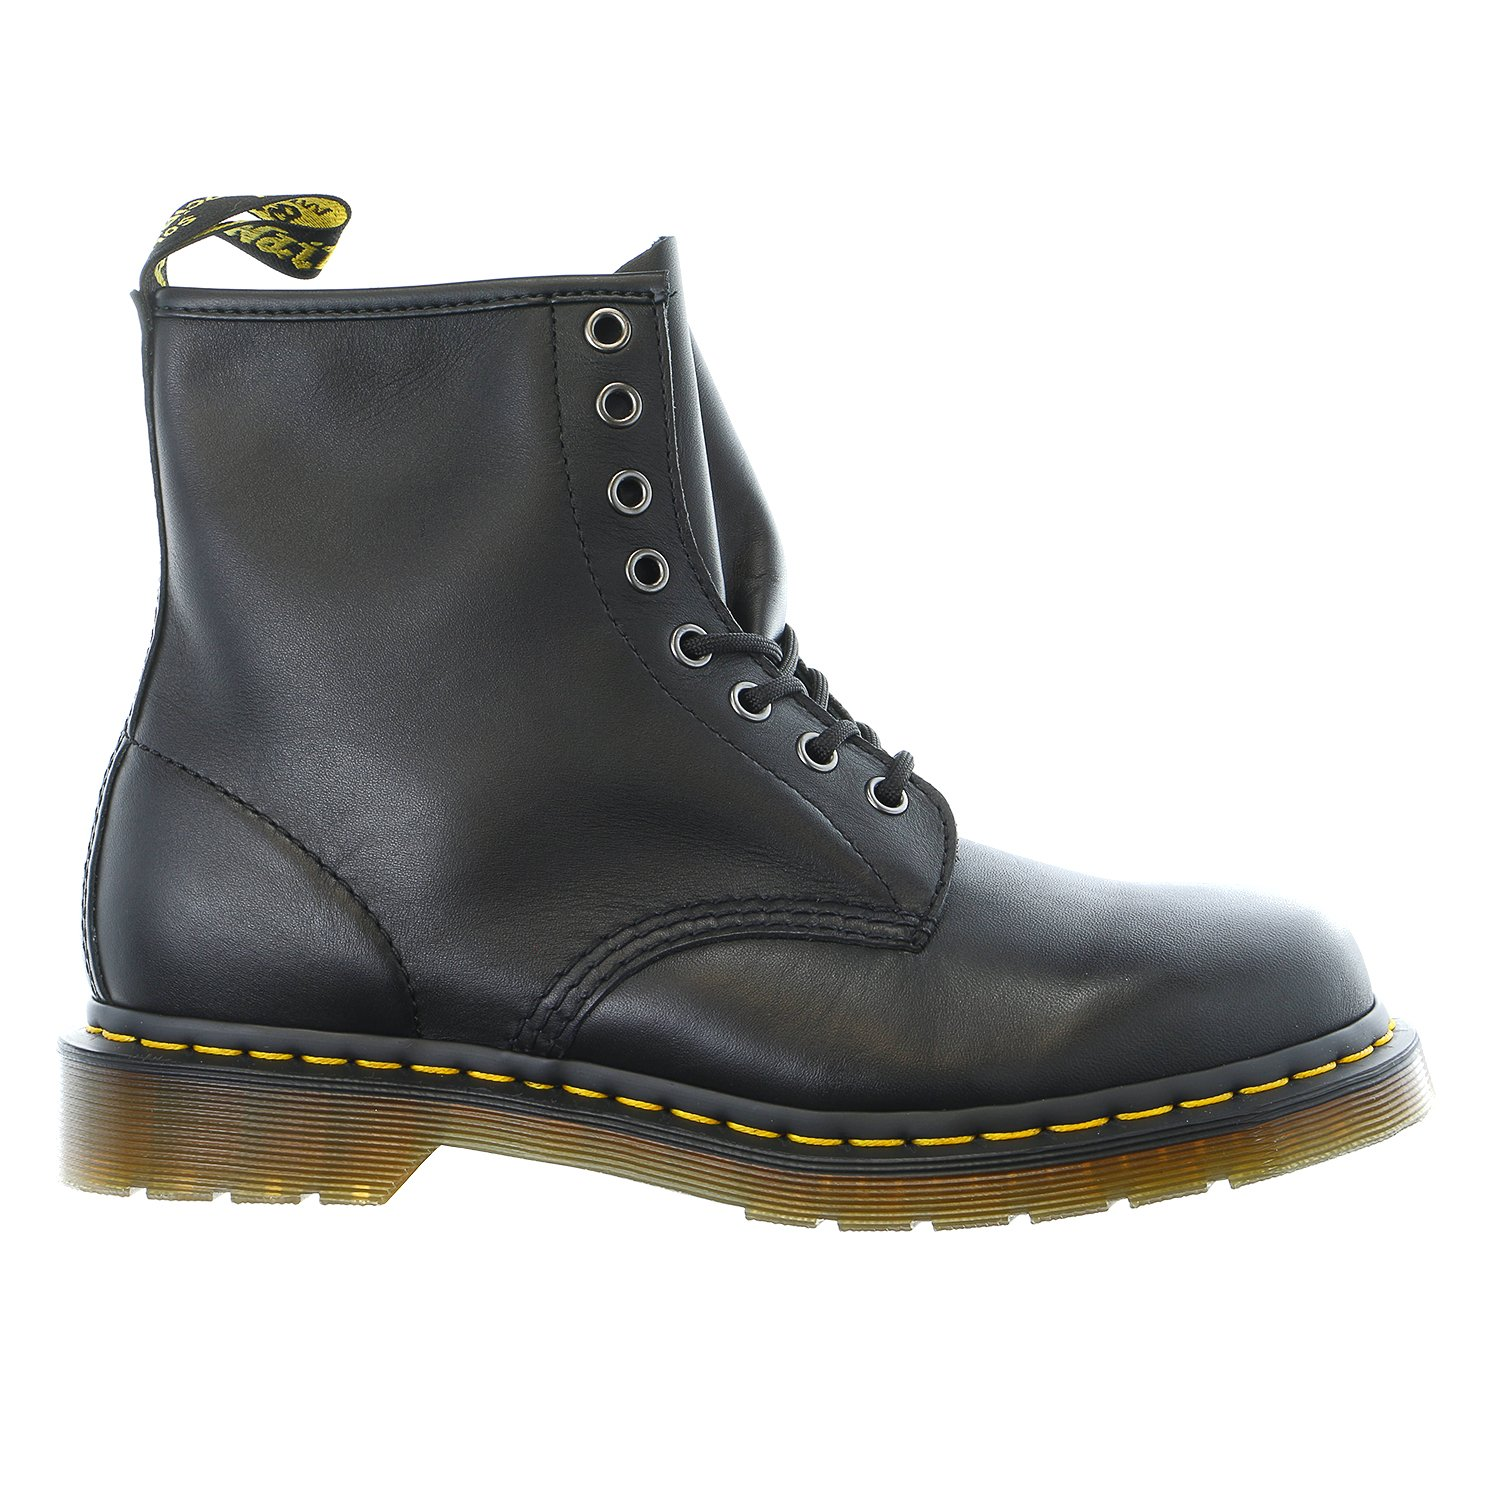 Dr. Martens Men's 1460 Re-Invented 8 Eye Lace Up Boot,Black Nappa Leather,9 UK (10 M US Mens)